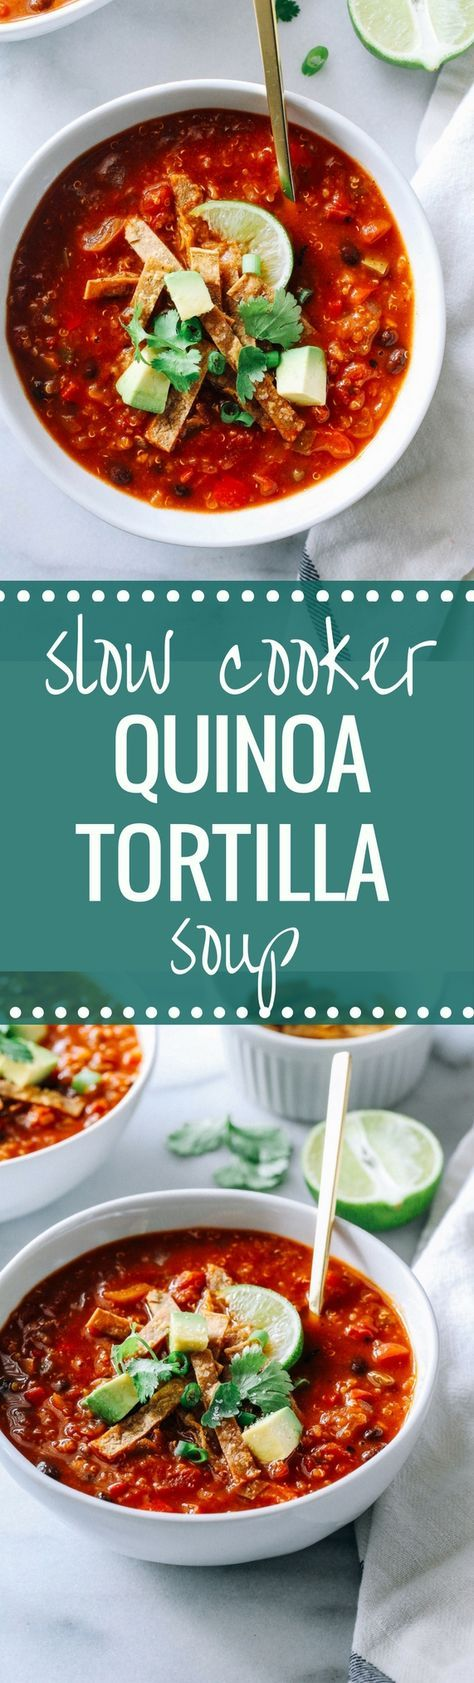 Slow Cooker Quinoa Tortilla Soup- a healthy meal that's packed with plant protein and delicious southwestern flavor. Options to make in the Crockpot or stovetop in 30 minutes! (vegan + gluten-free)